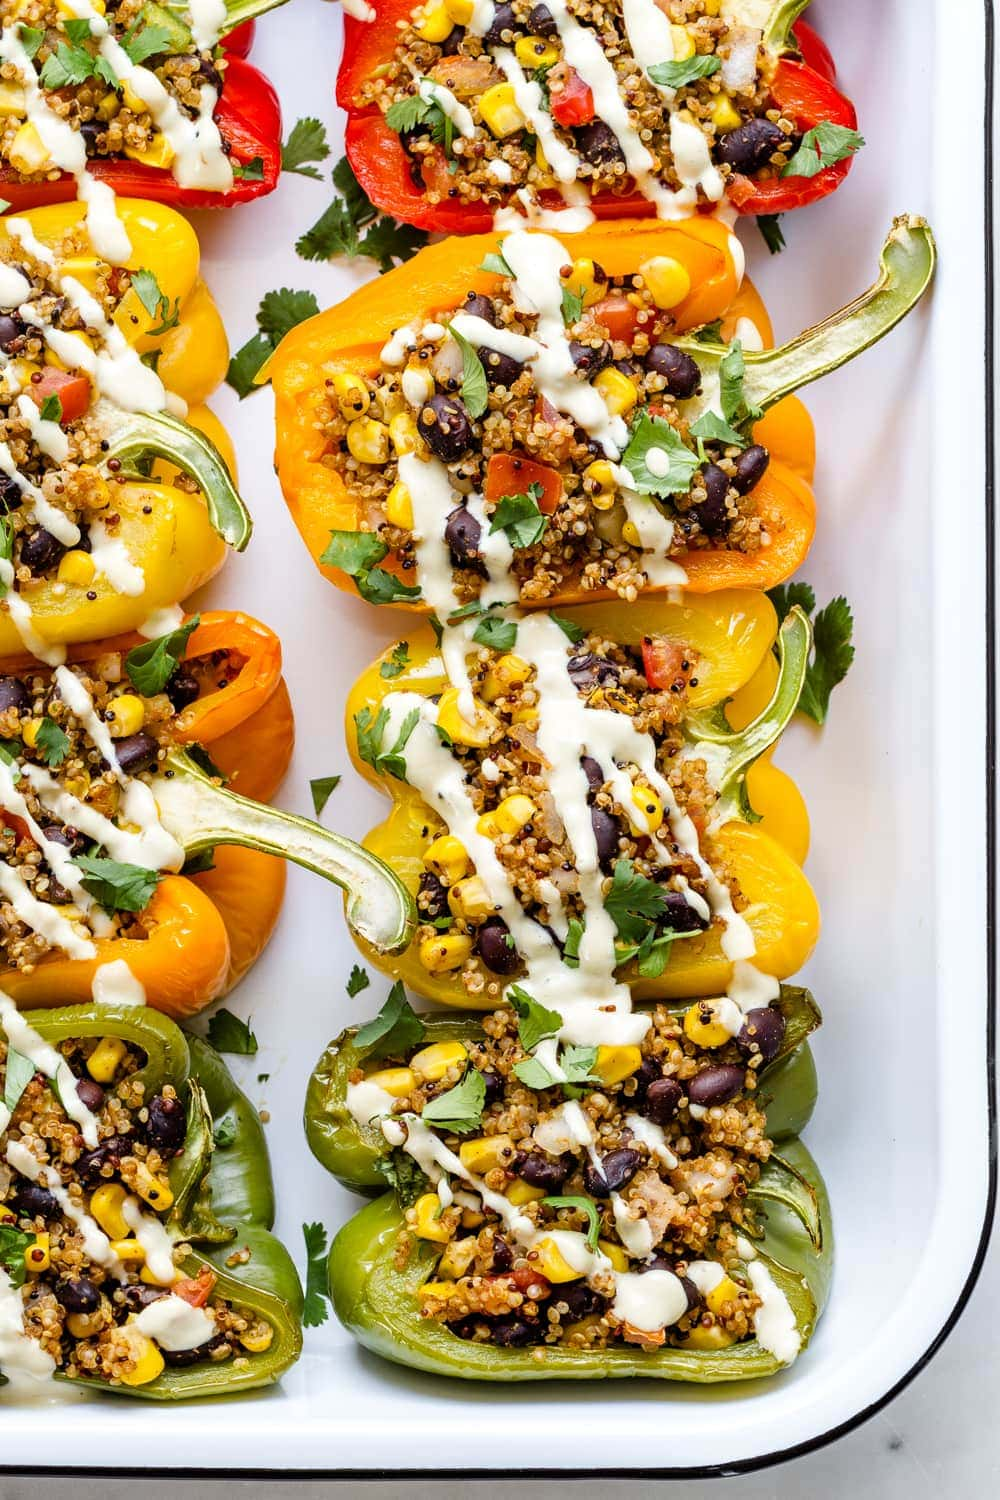 Quinoa Stuffed Peppers Easy Vegan The Simple Veganista